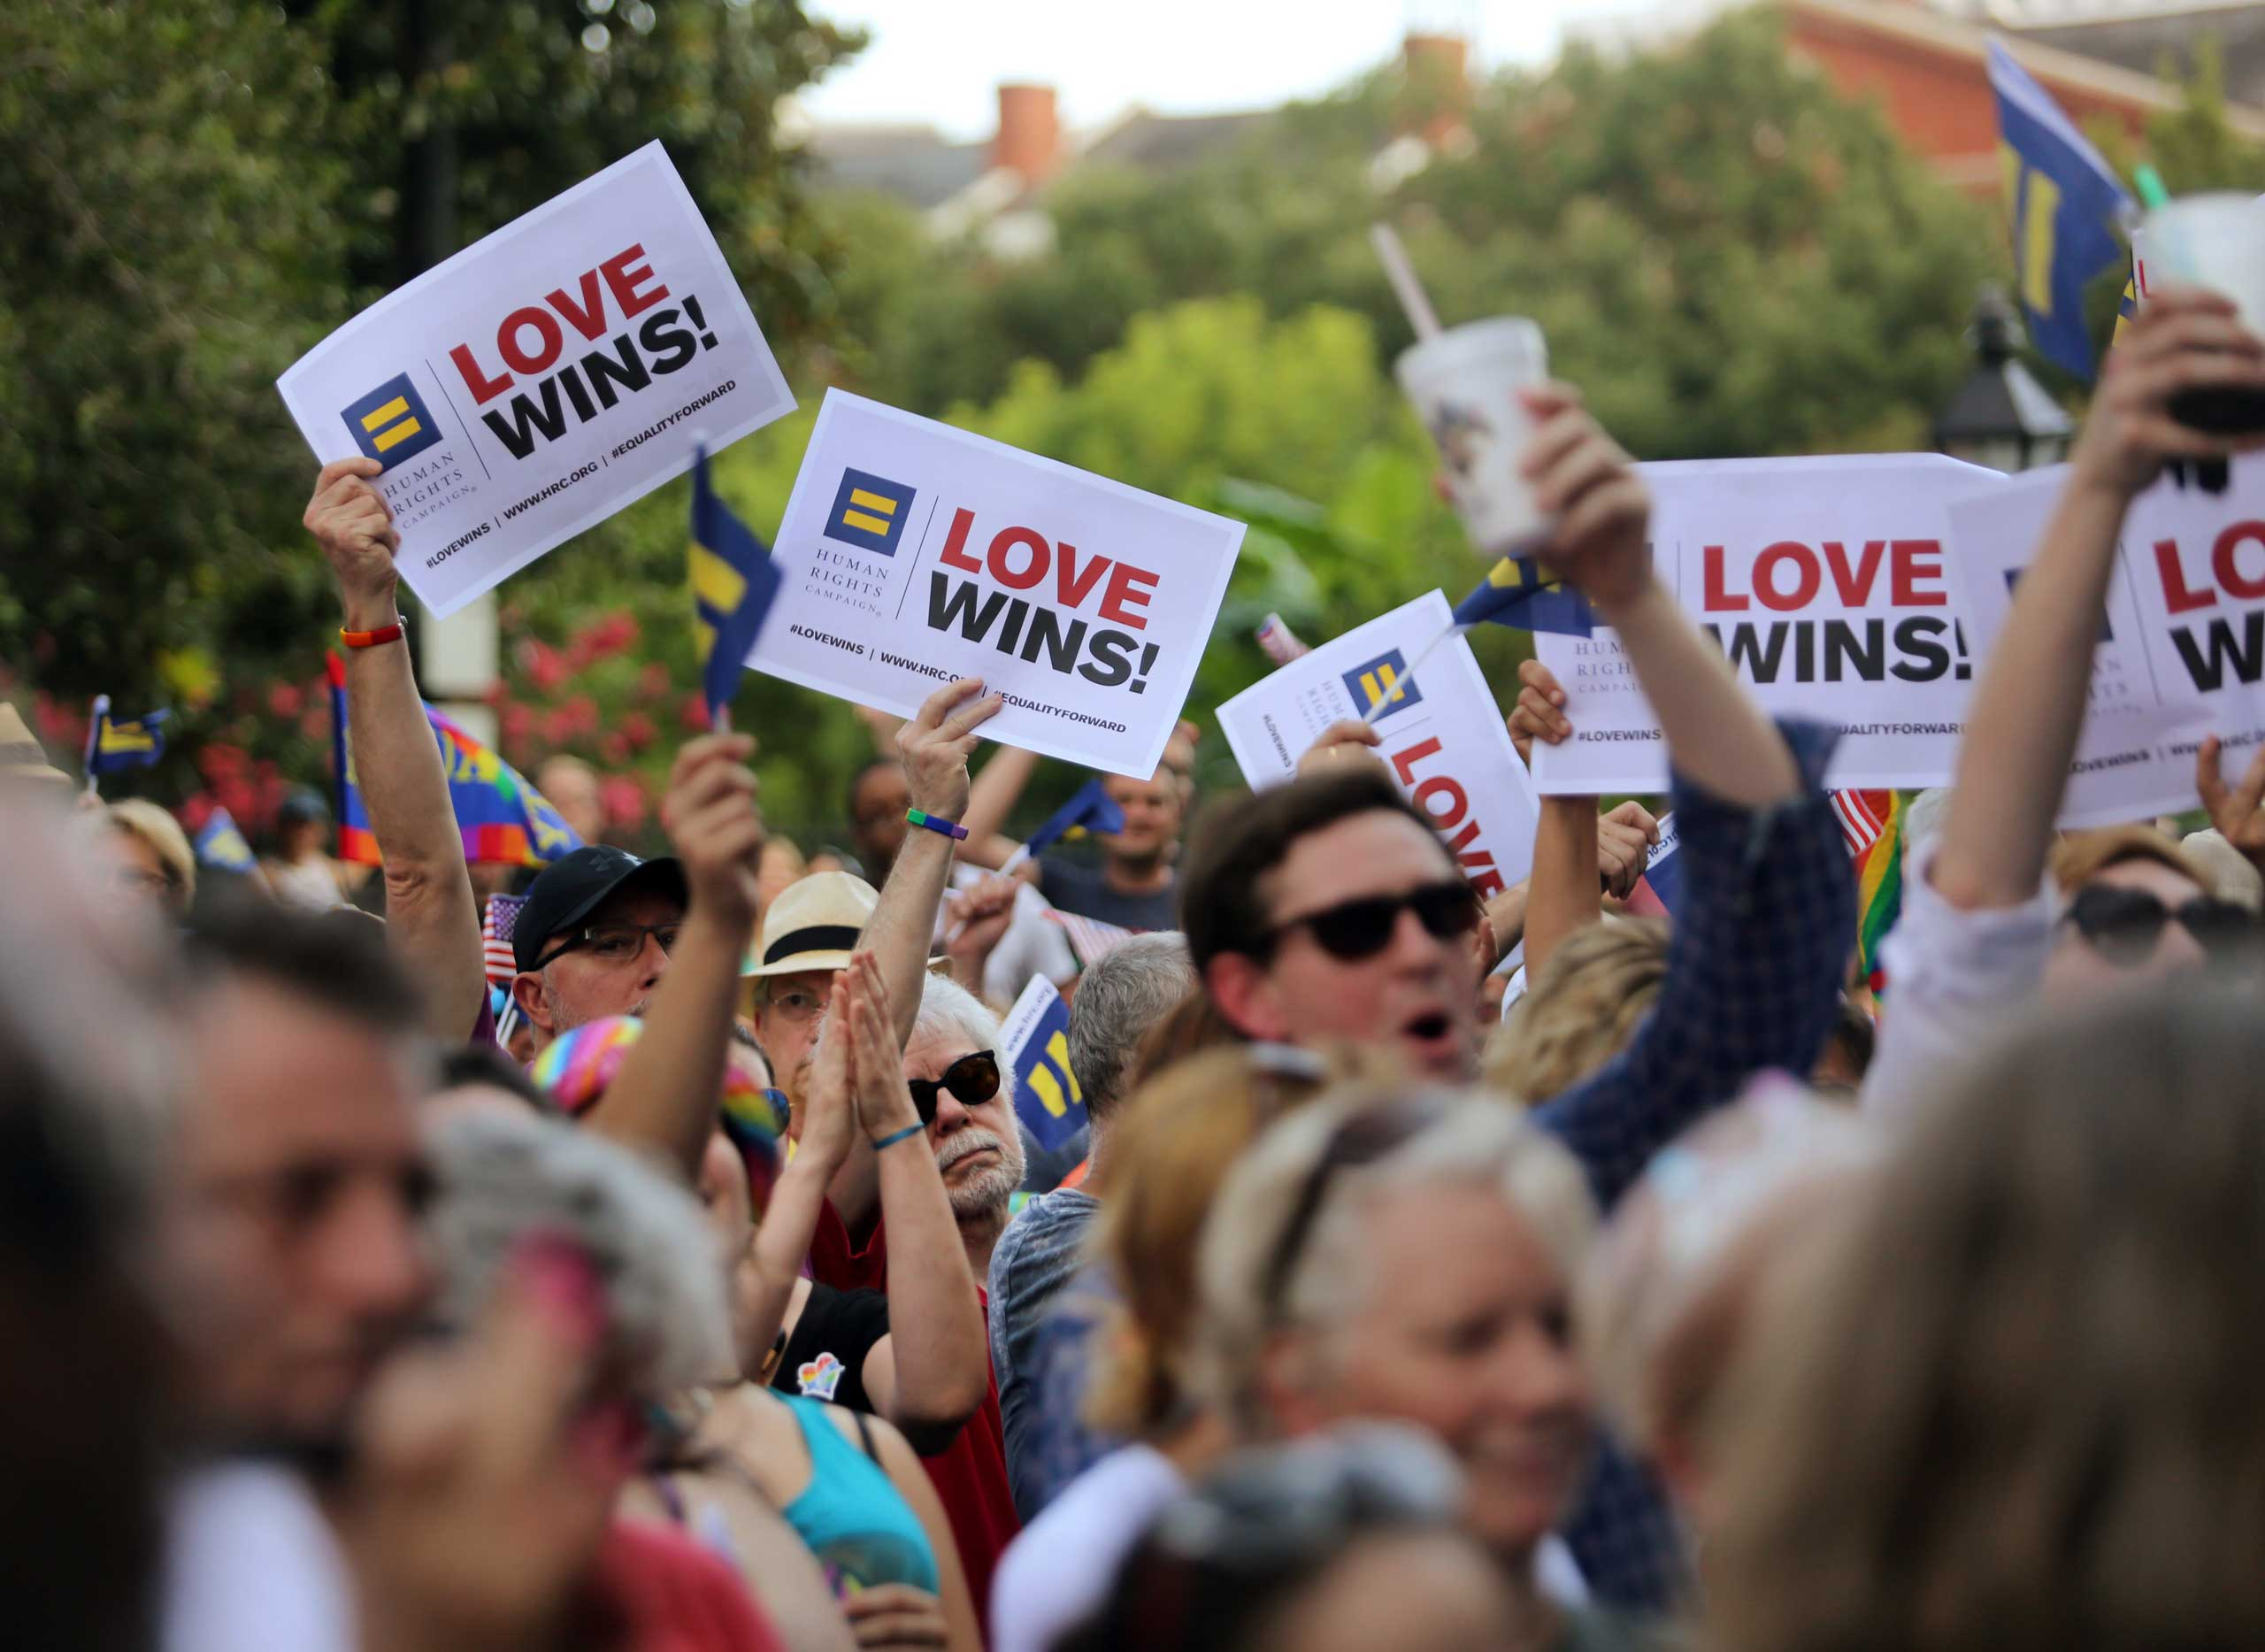 A rally was held in reaction to the Supreme Court legalizing gay marriage in all 50 states by the Forum for Equality, the Human Rights Campaign and the ACLU in Jackson Square on June 26, 2015.